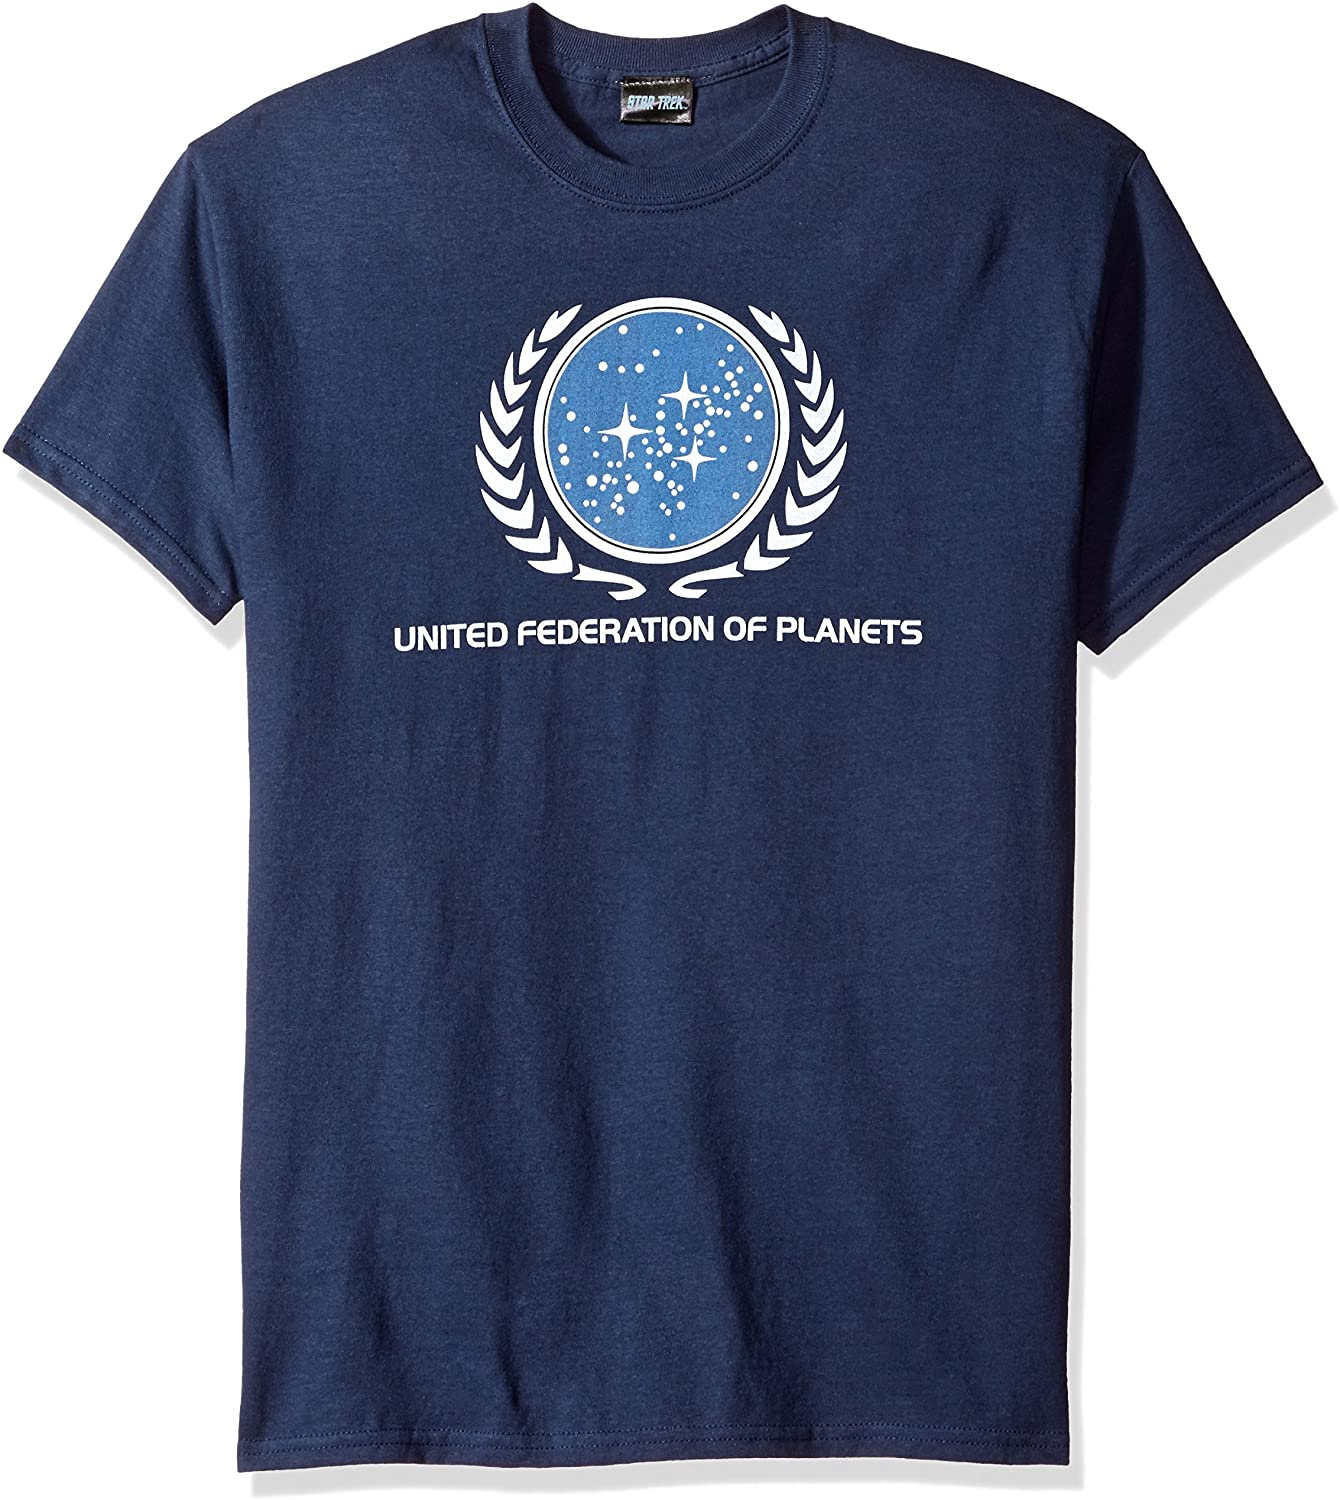 Star Trek United Federation Logo Enterprise SciFi TV Navy Blue Adult T-Shirt Tee